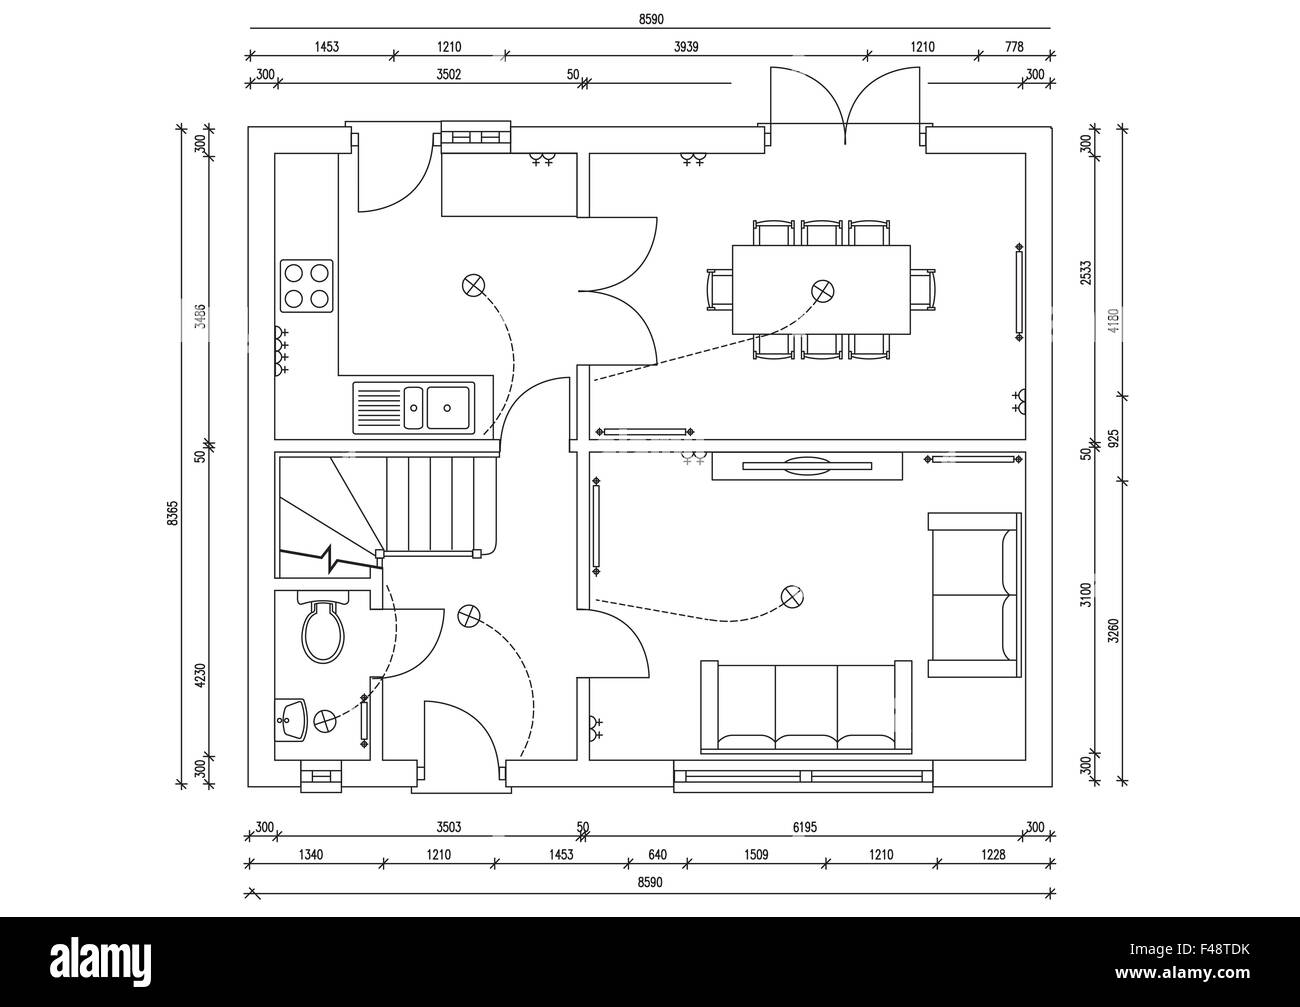 Blueprint plan of 3 bedroom house stock photo 88705279 alamy blueprint plan of 3 bedroom house malvernweather Choice Image